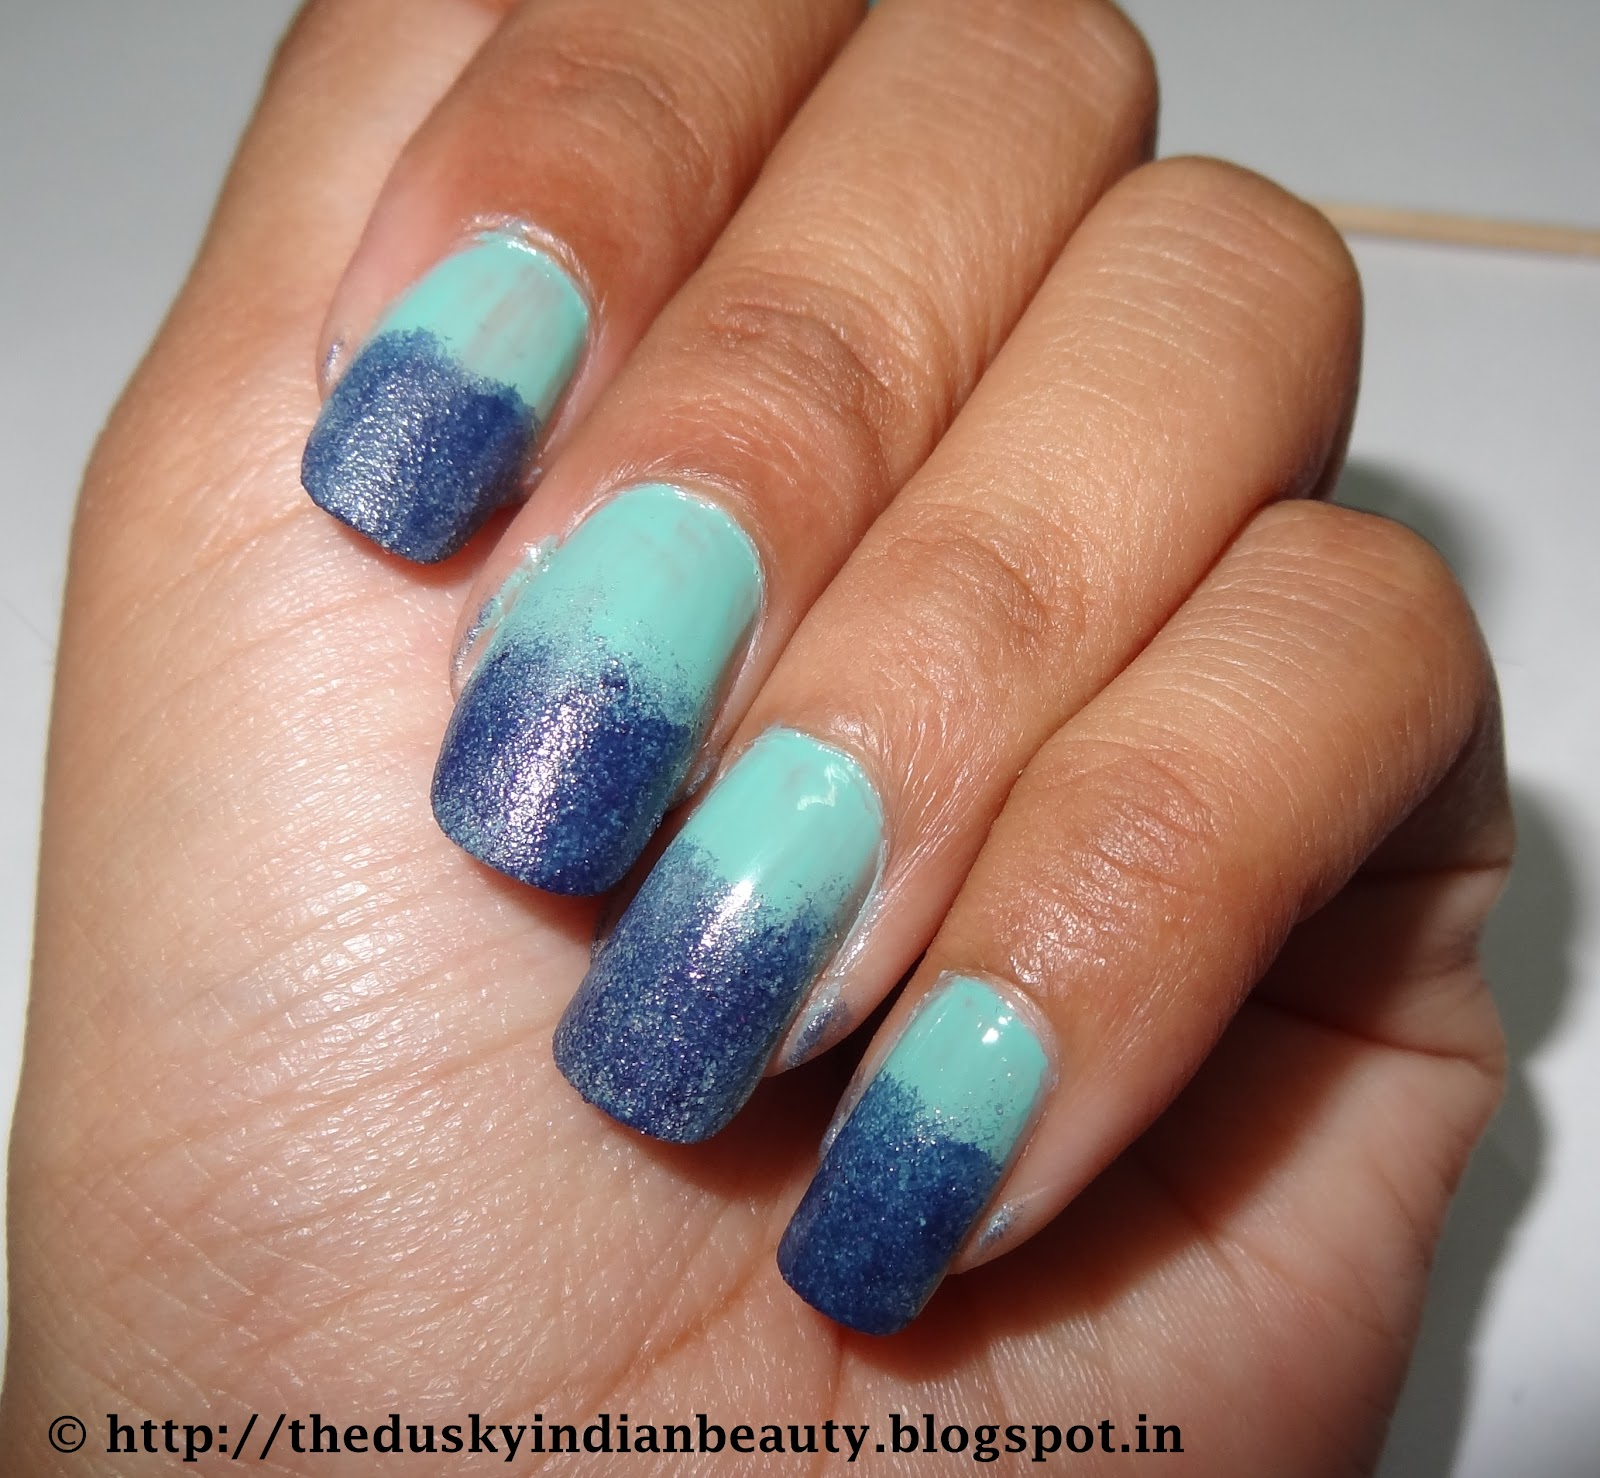 Pictorial my first attempt at ombre gradient sponging nail art uzma etc but this was my first attempt at sponging nail art after inspiration from all the lovely nail artists here and i hope you guys like it prinsesfo Image collections